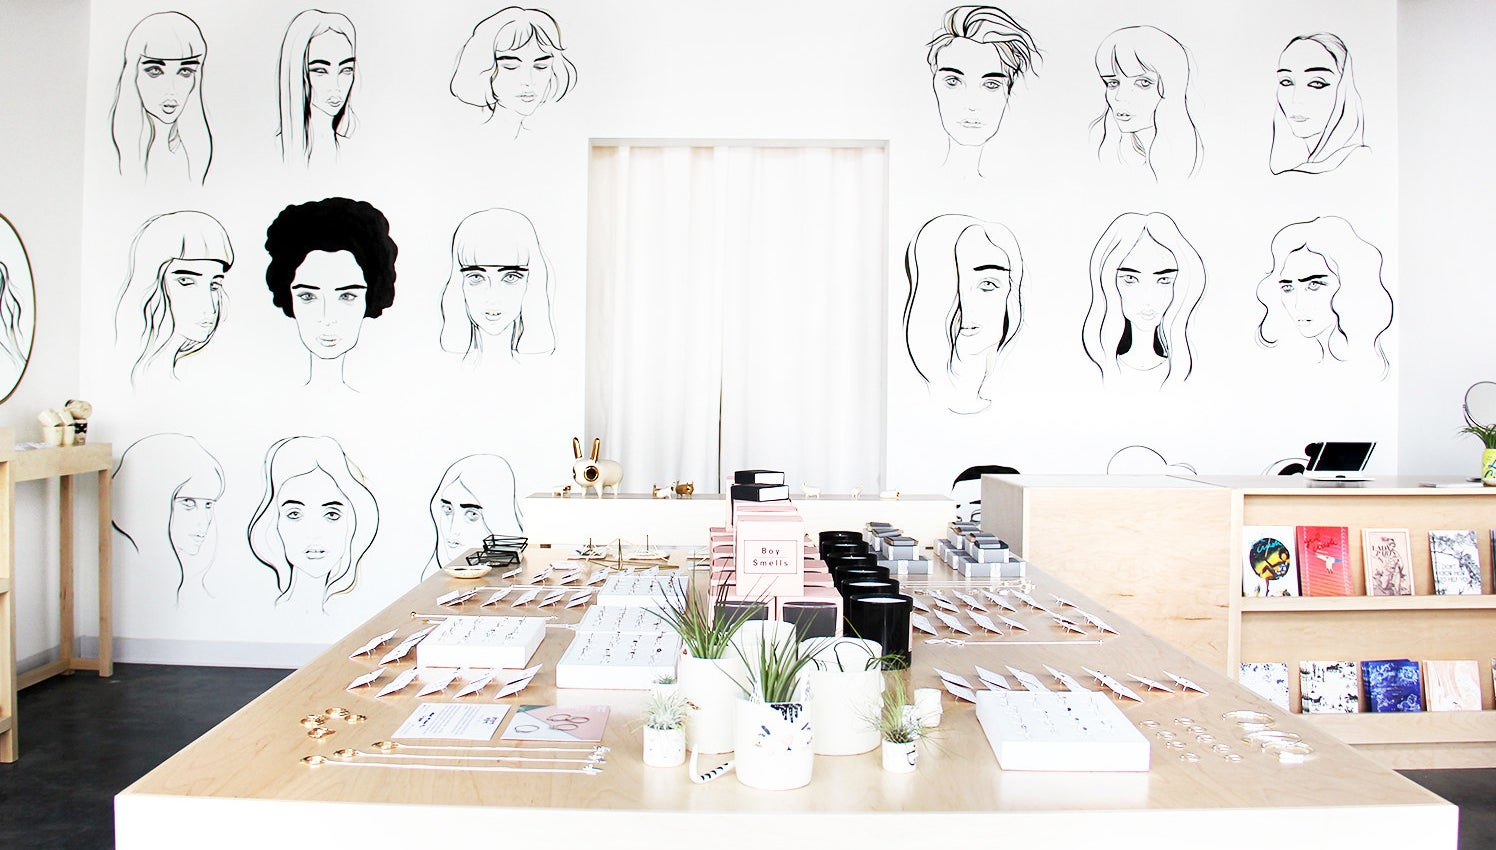 This picture-perfect shop is a rotating pop-up gallery that sells everything from jewelry and clothing to zines and ceramics, with a portion of sales going toward nonprofits benefiting women. They also hold workshops on everything from skin care to self-care and throw events to raise money for local women's shelters.